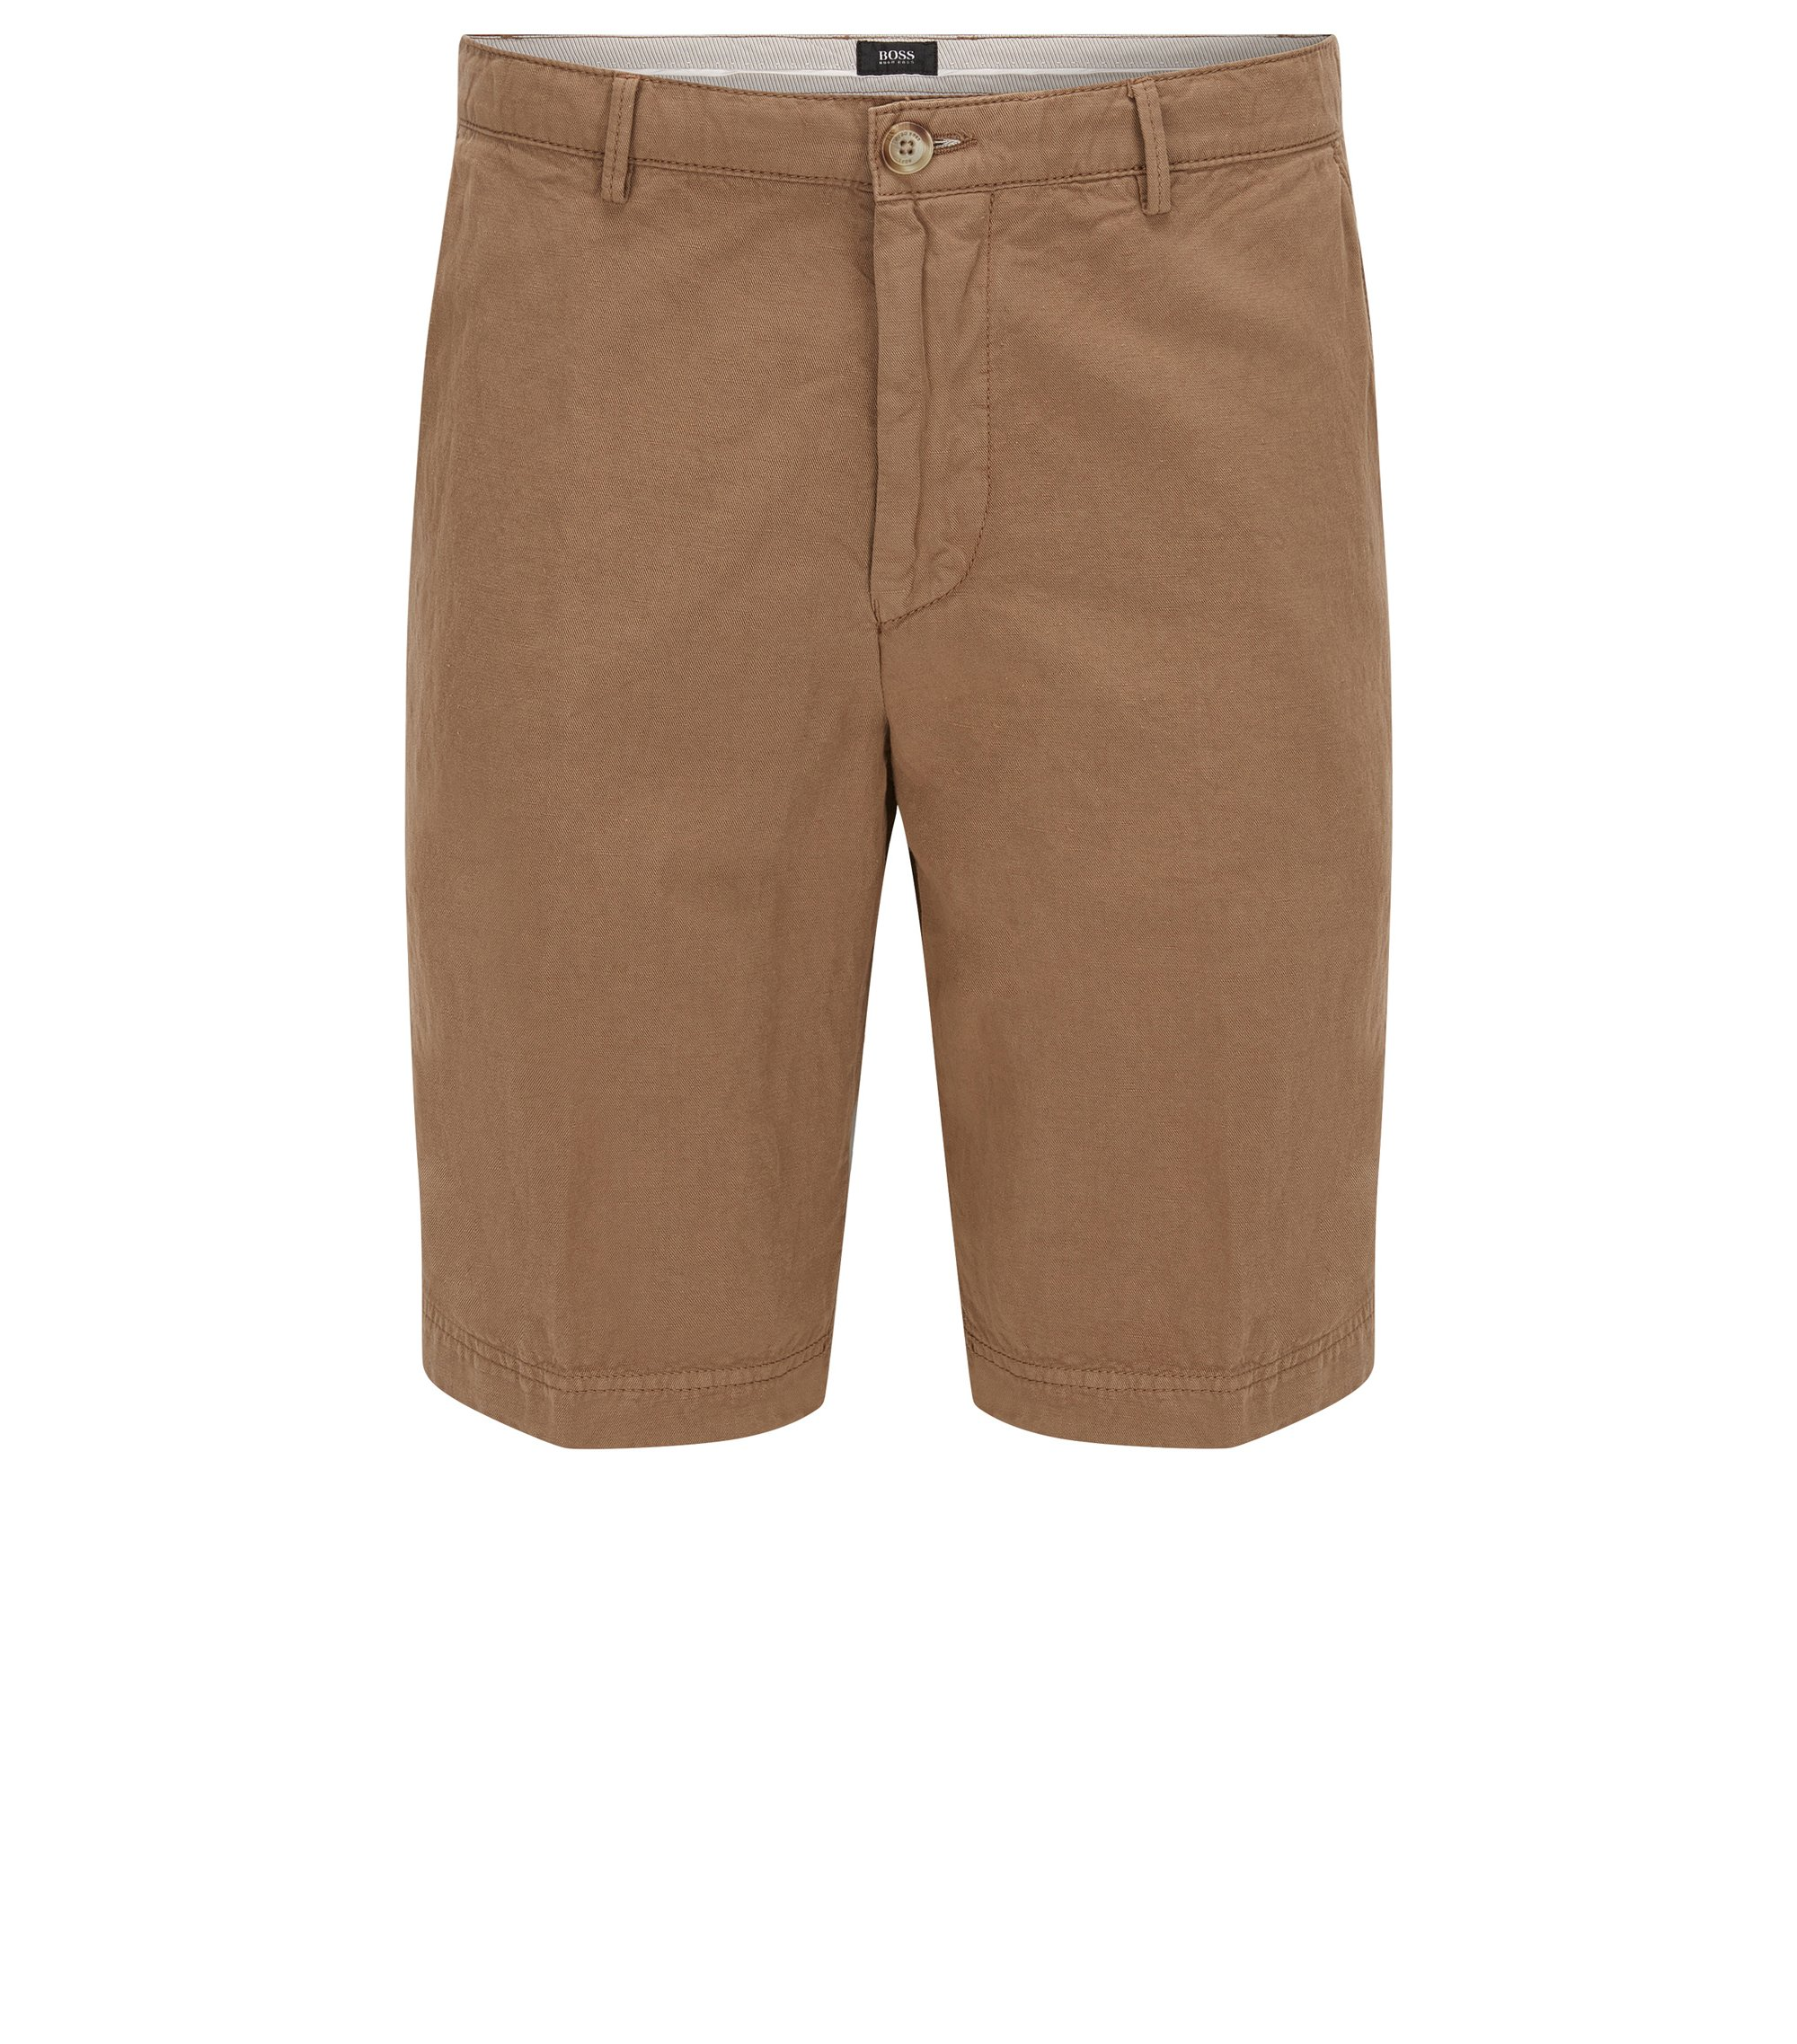 Cotton Linen Shorts, Regular Fit | Crigan Short D, Beige